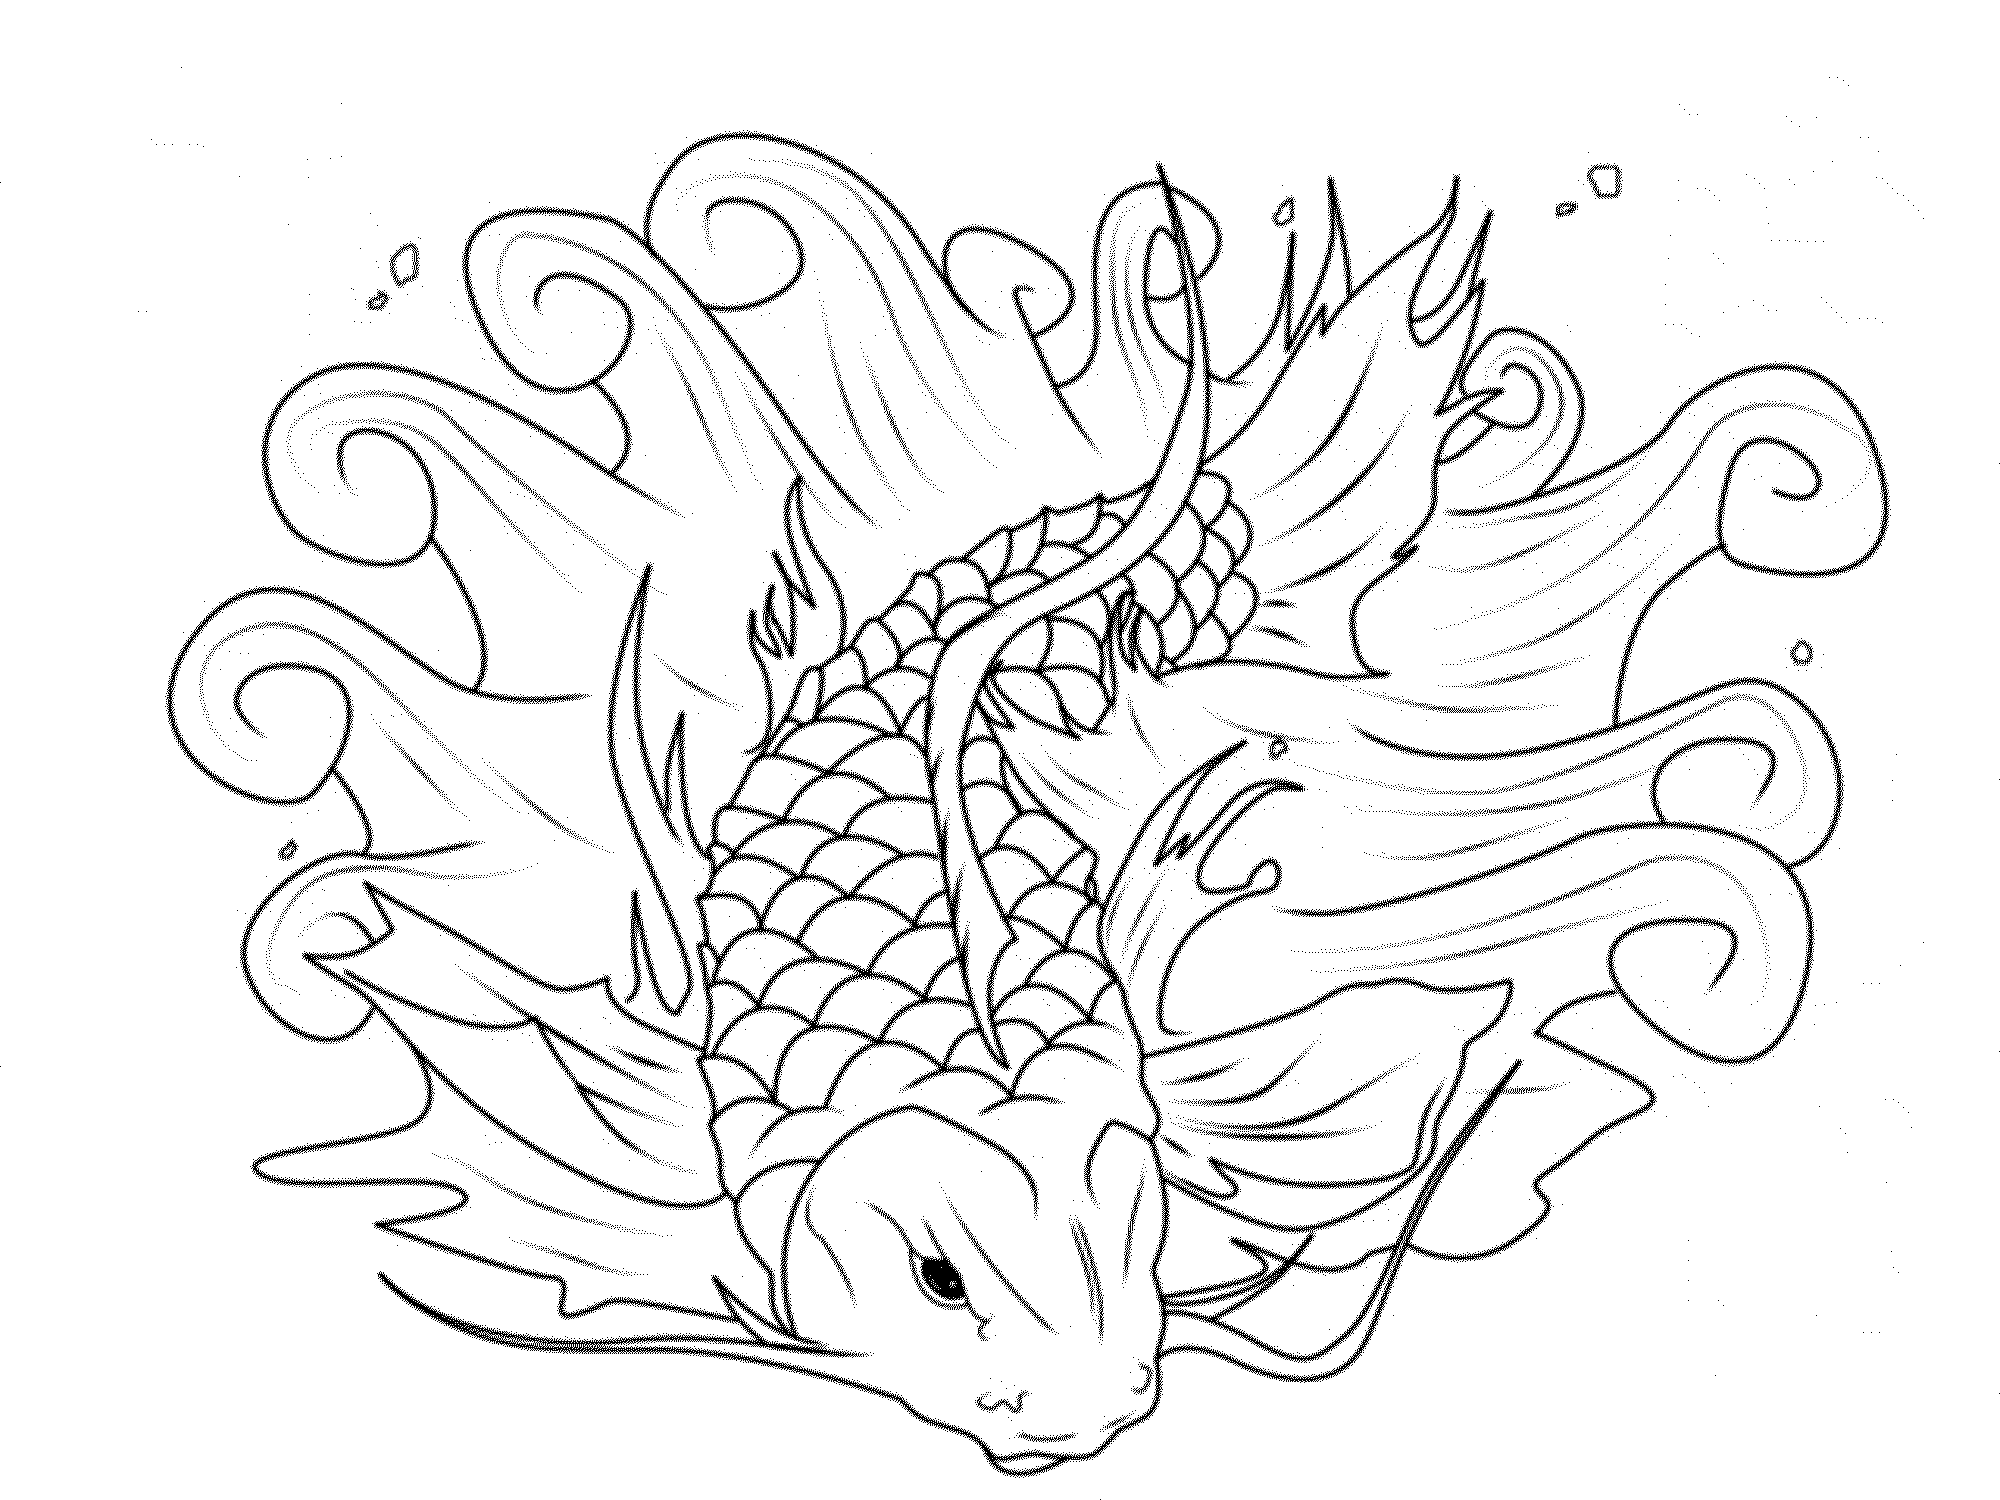 2000x1500 Koi Fish Coloring Page Printable And Pages